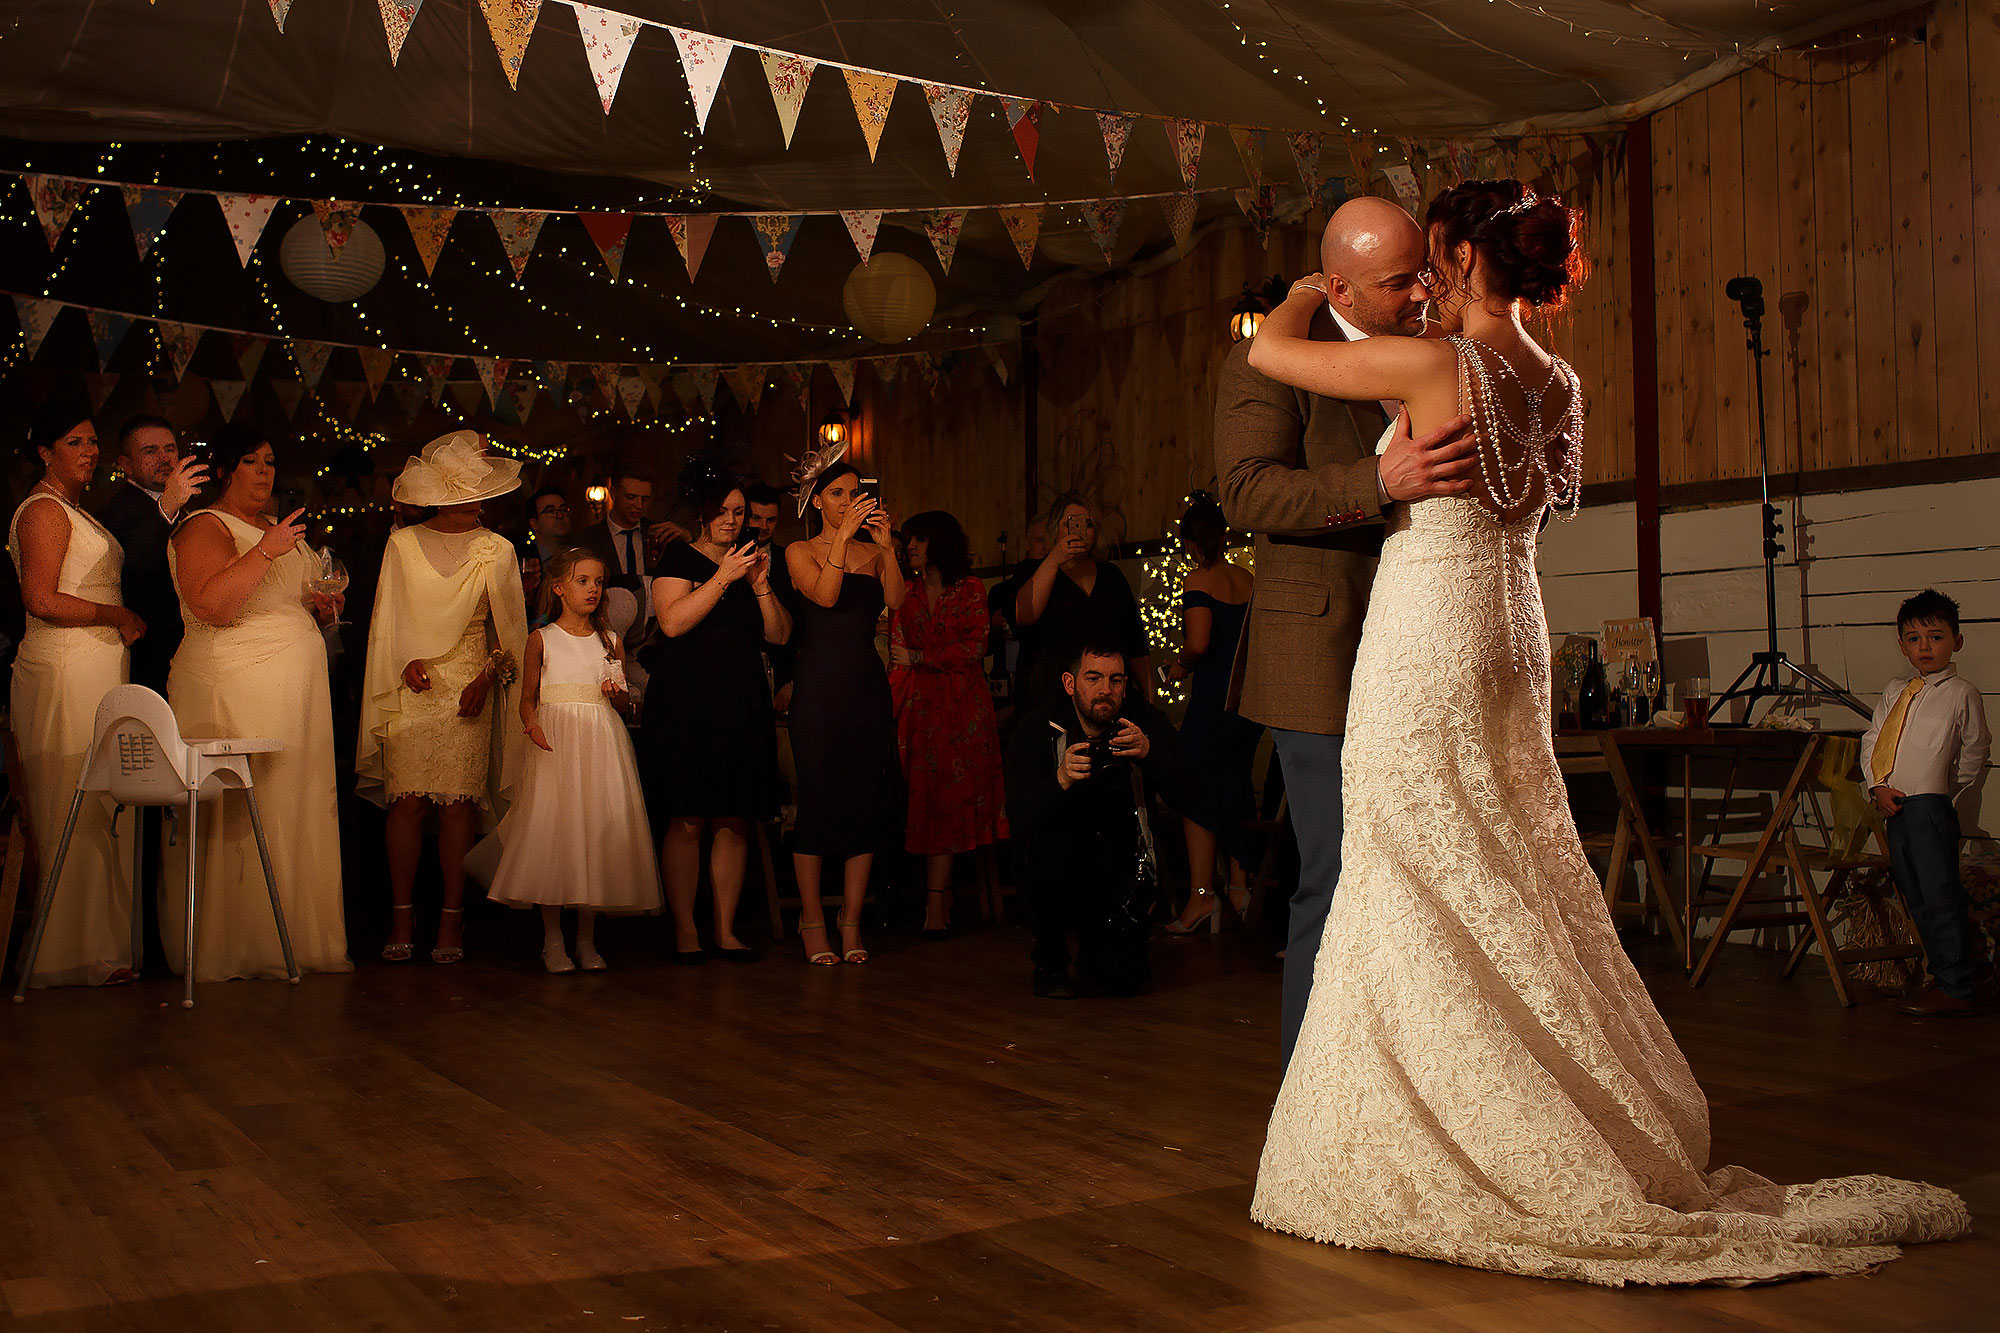 Bride and grooms first dance as wedding guests watch | Summer wedding at Wellbeing Farm - Toni Darcy Photography